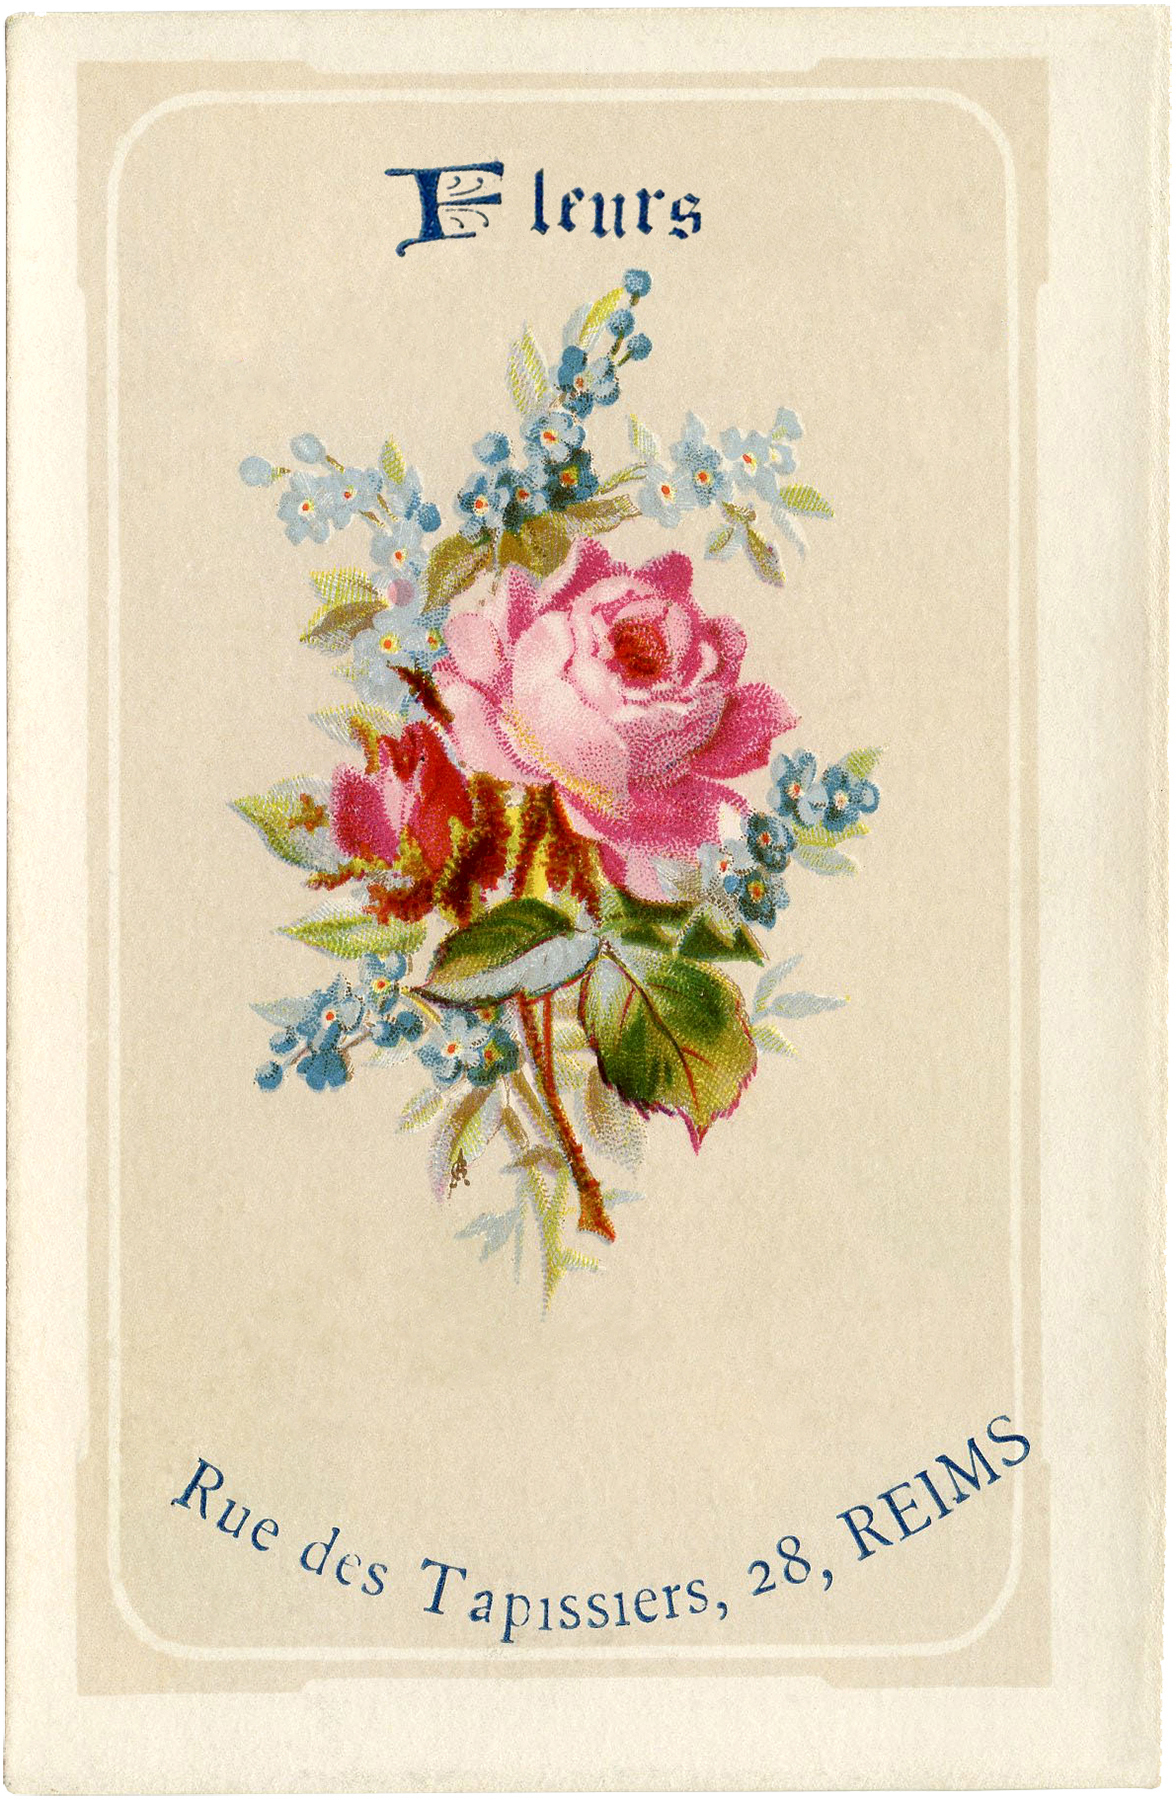 Fkeurs Lovely French Fleurs Image The Graphics Fairy